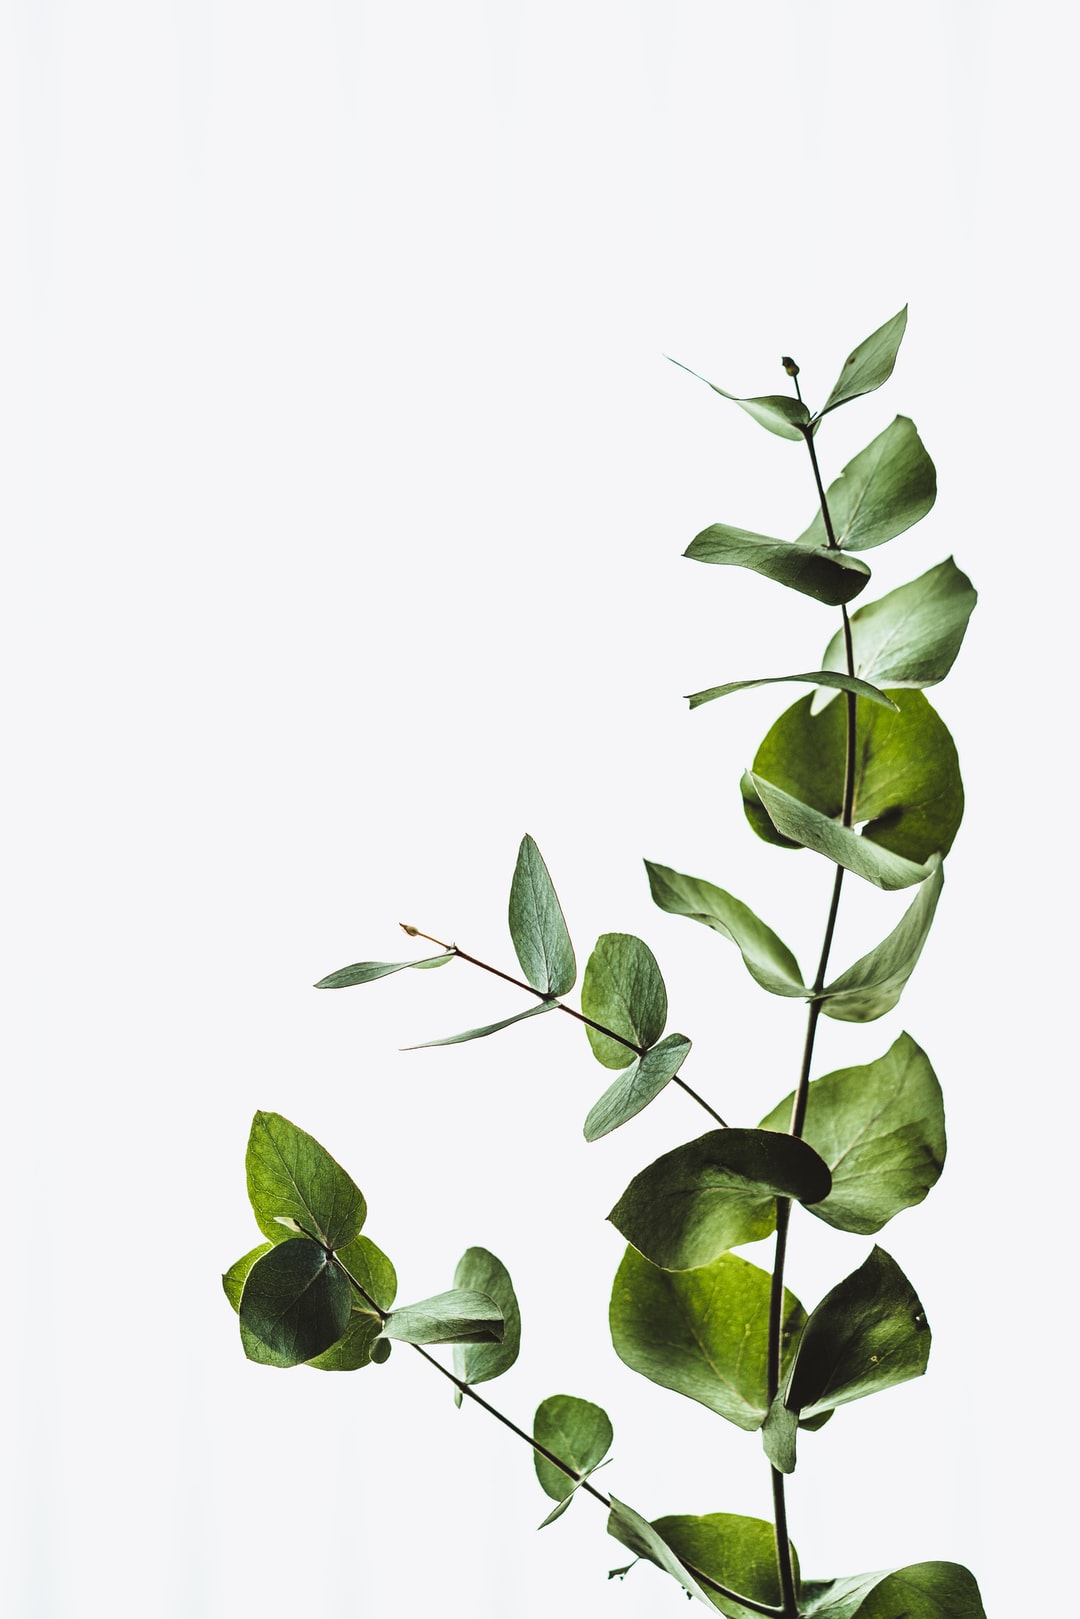 Minimal eucalyptus leaves